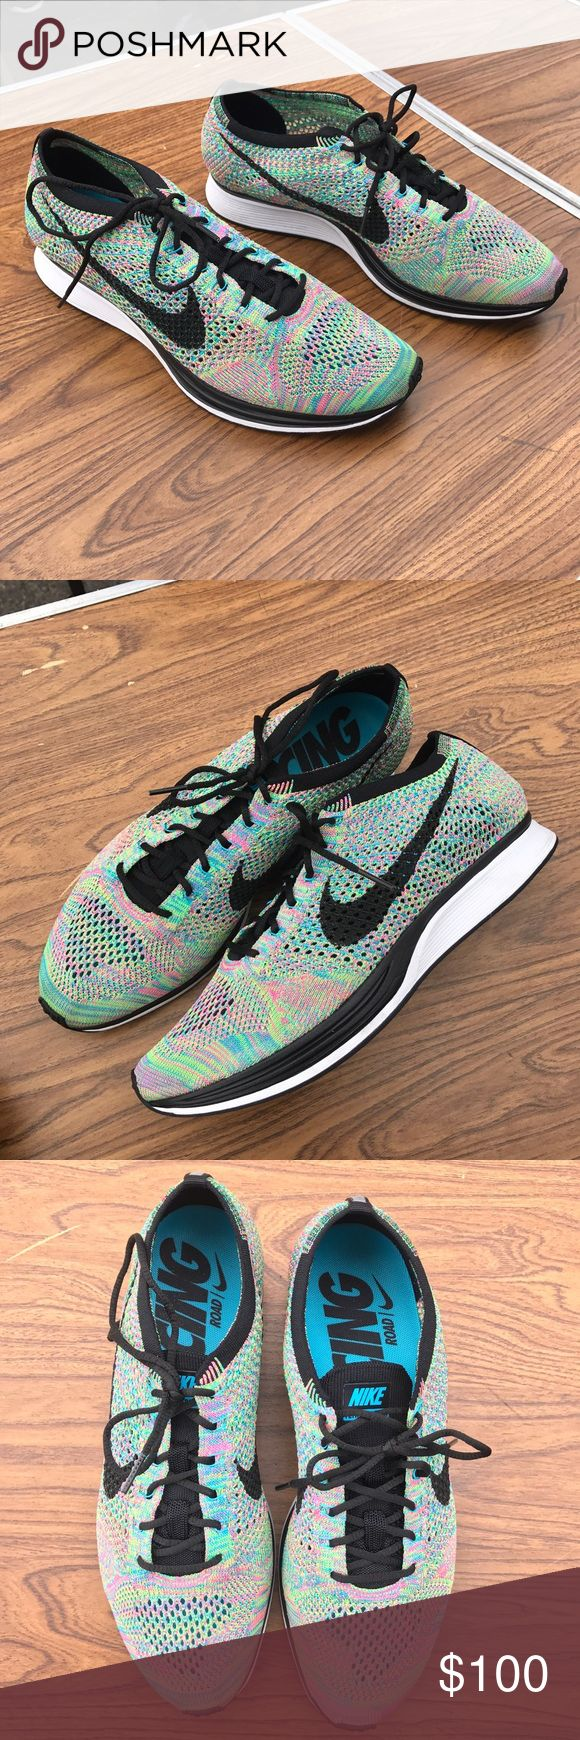 Nike flyknit racer rainbow nwob Men's Nike flyknot racer / rainbow color / men's 10.5 // excellent condition // smudges from handling //hypebeast Nike Shoes Athletic Shoes